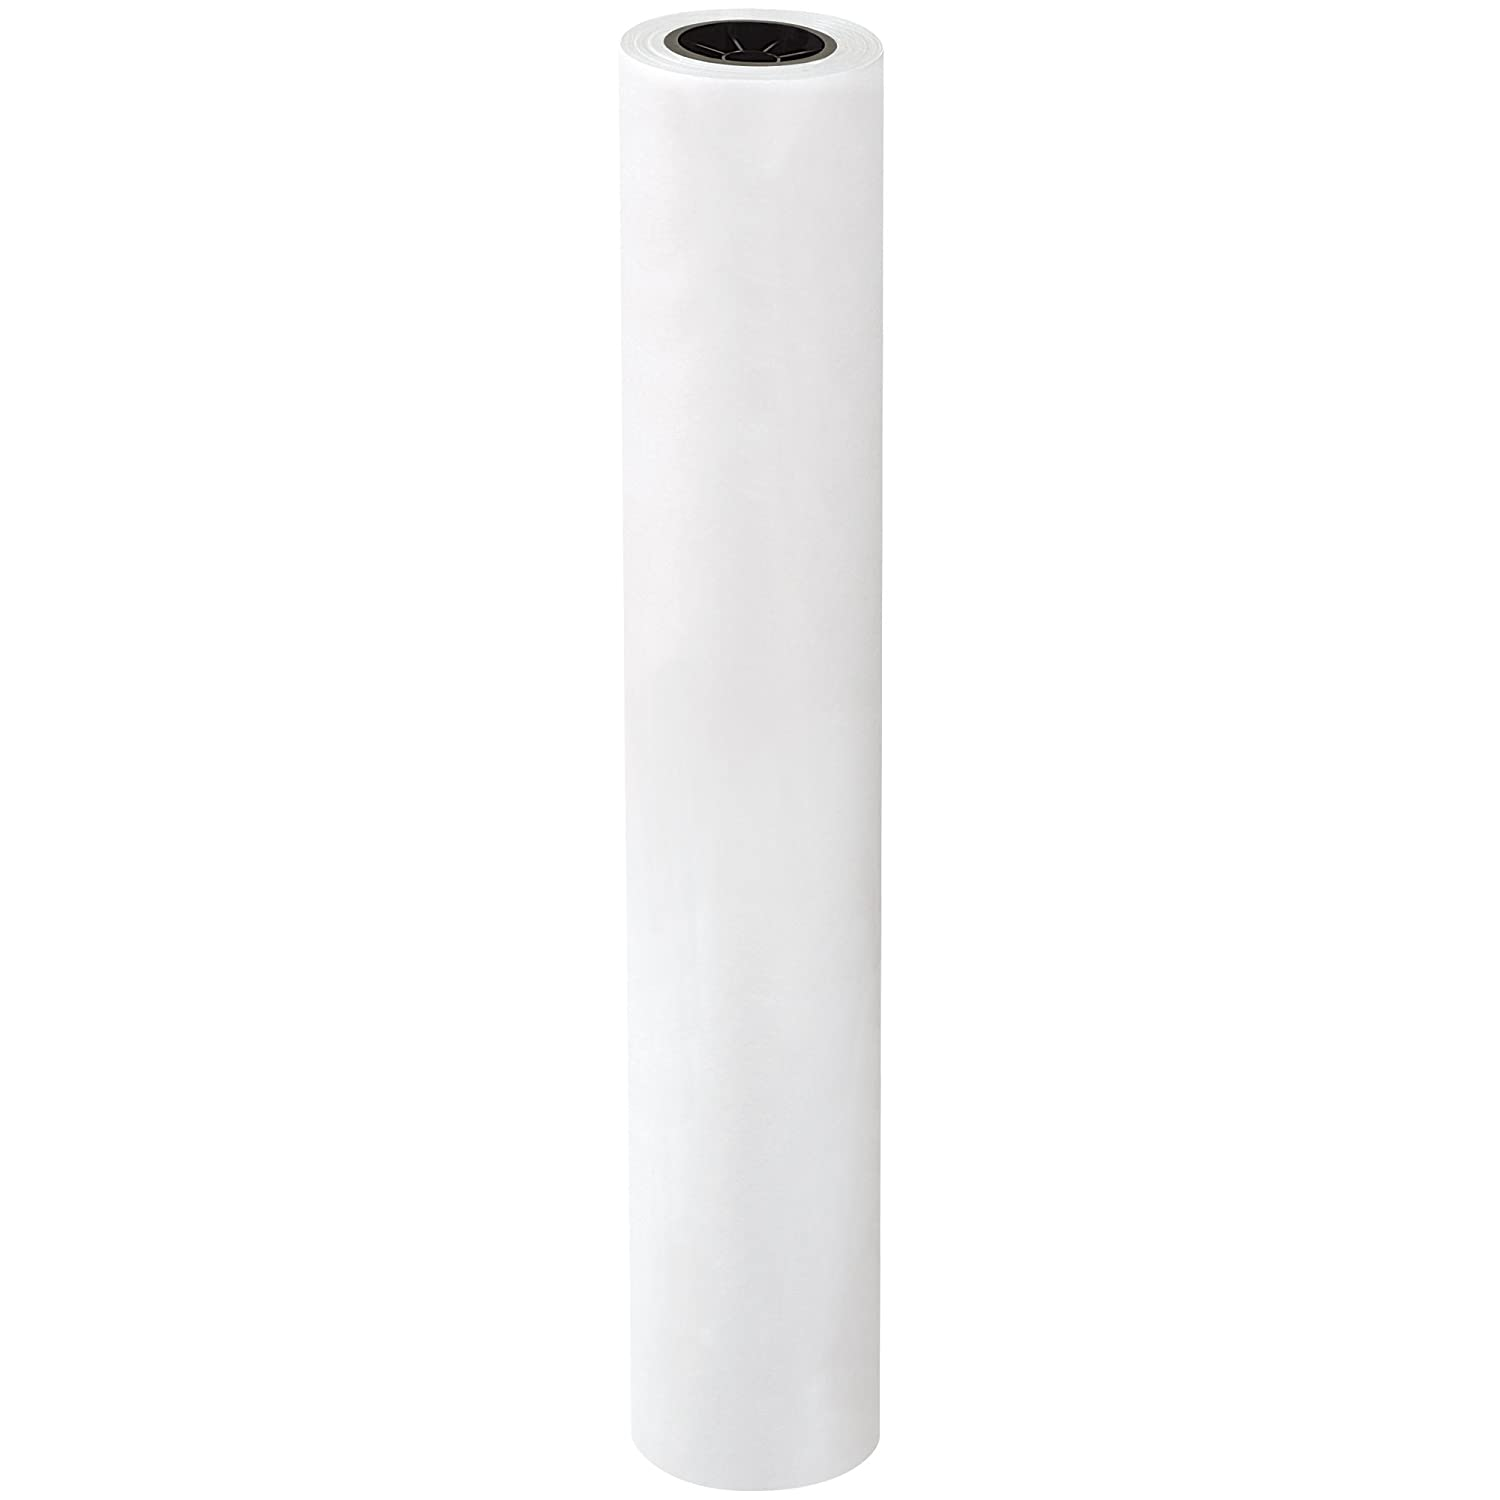 Pack of 1 Roll Boxes Fast Tyvek Roll 30 x 150 White,